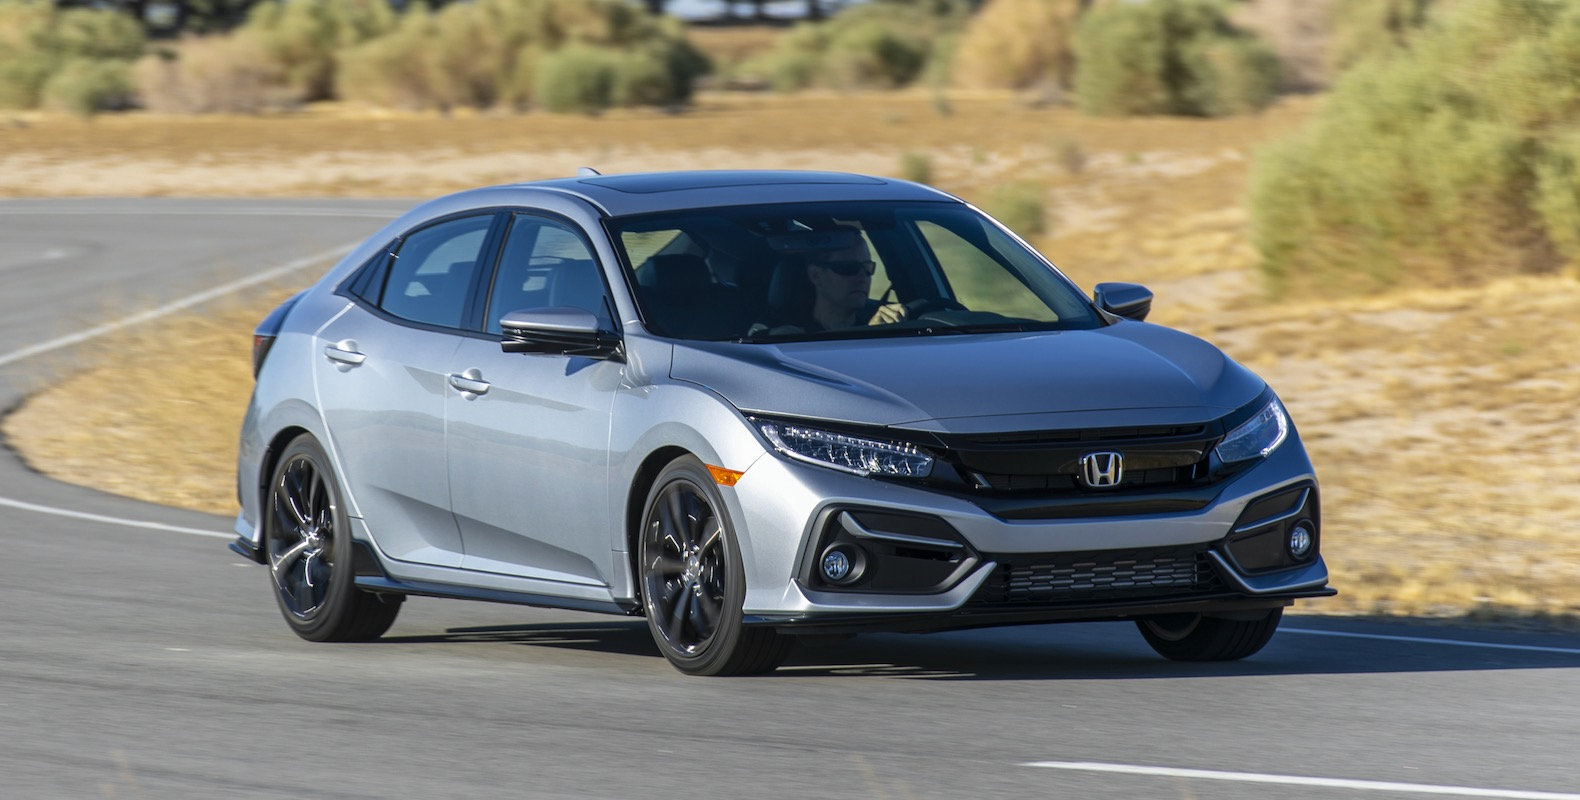 2020 Honda Civic Review The Class Leader The Torque Report